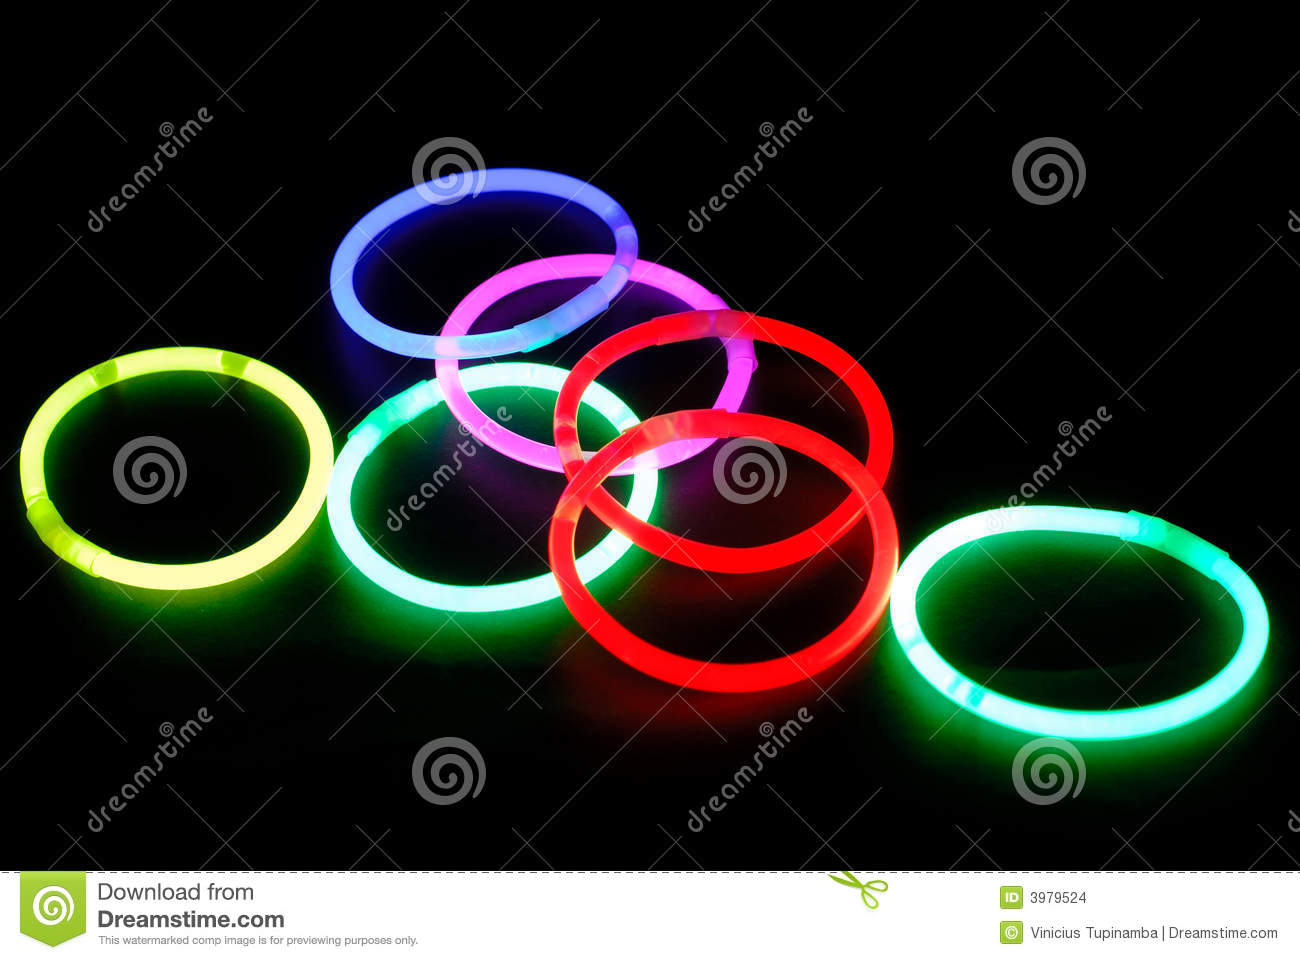 wallpapers neon abstract art creative circles rings vortex download for